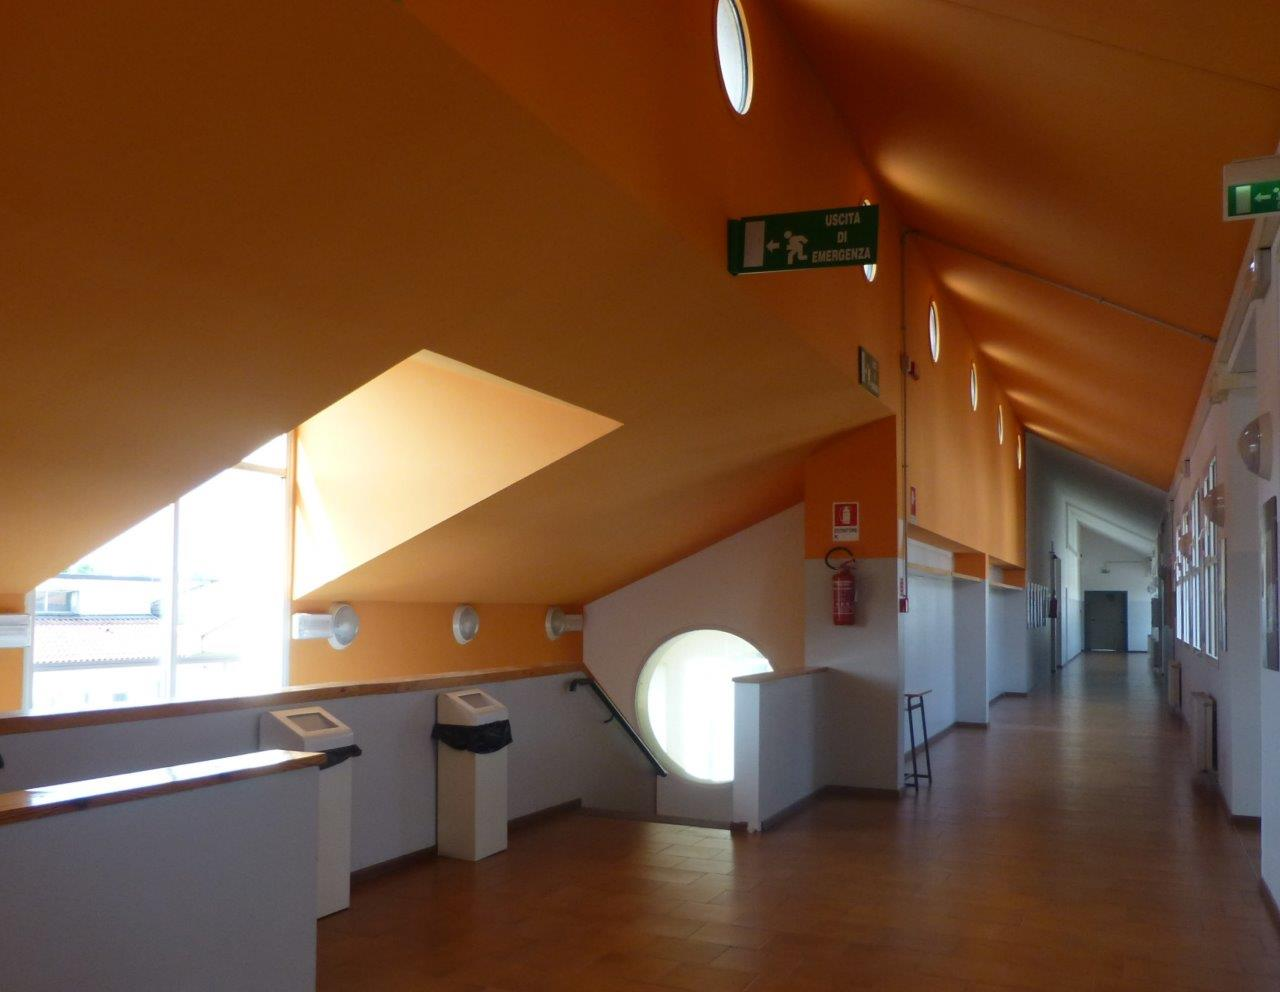 One of the corridors of the Maniago (Friuli) high school designed by Aldo Giurgola